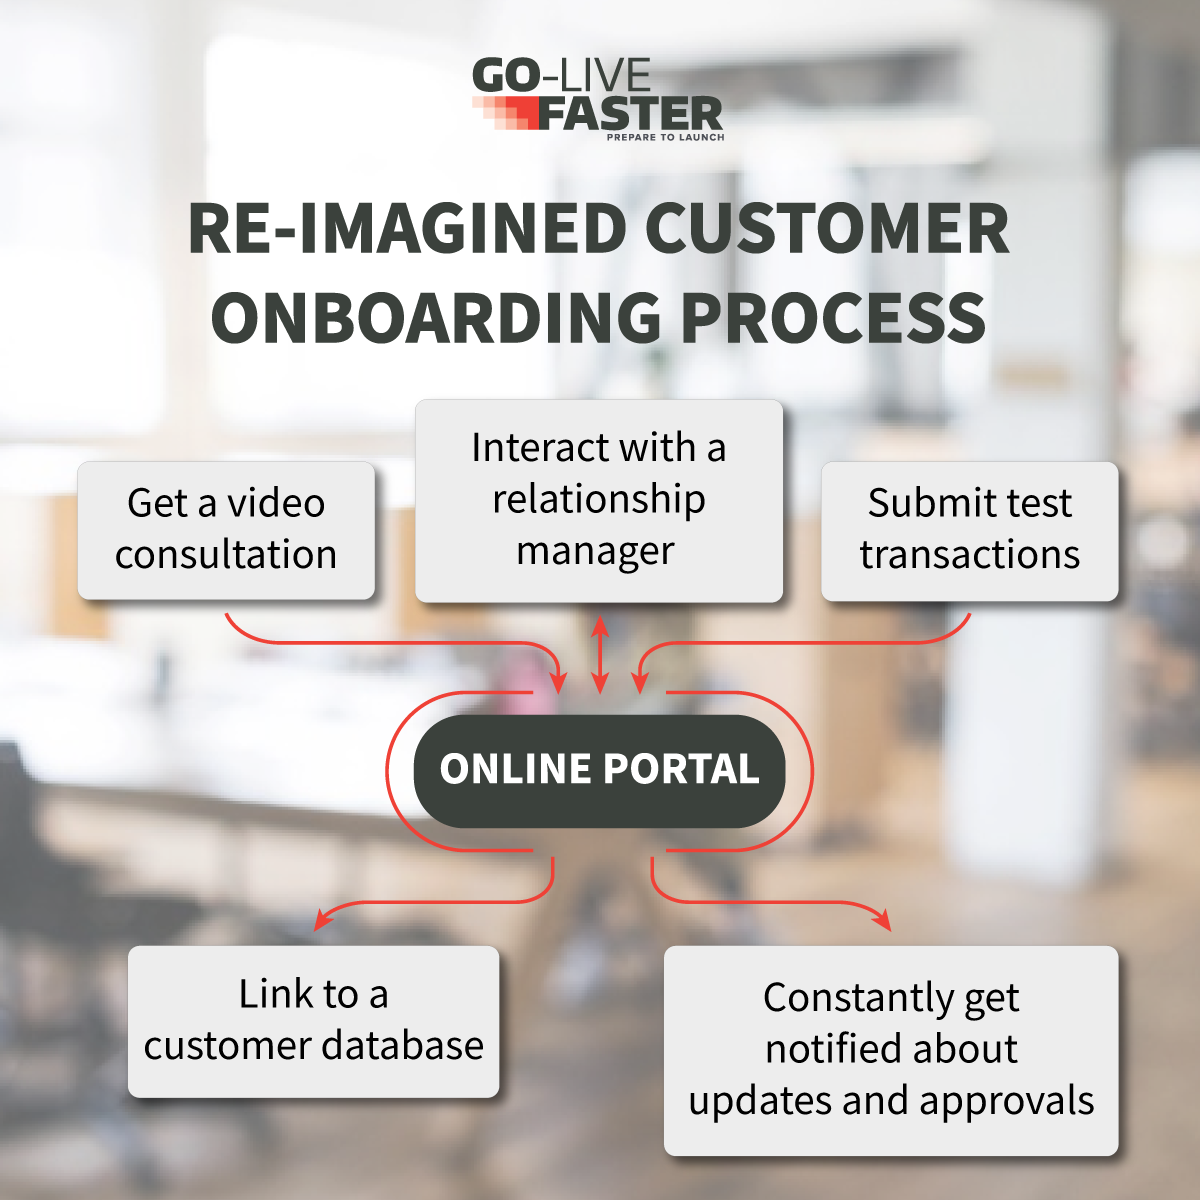 Re-Imagined customer onboarding  process for banks